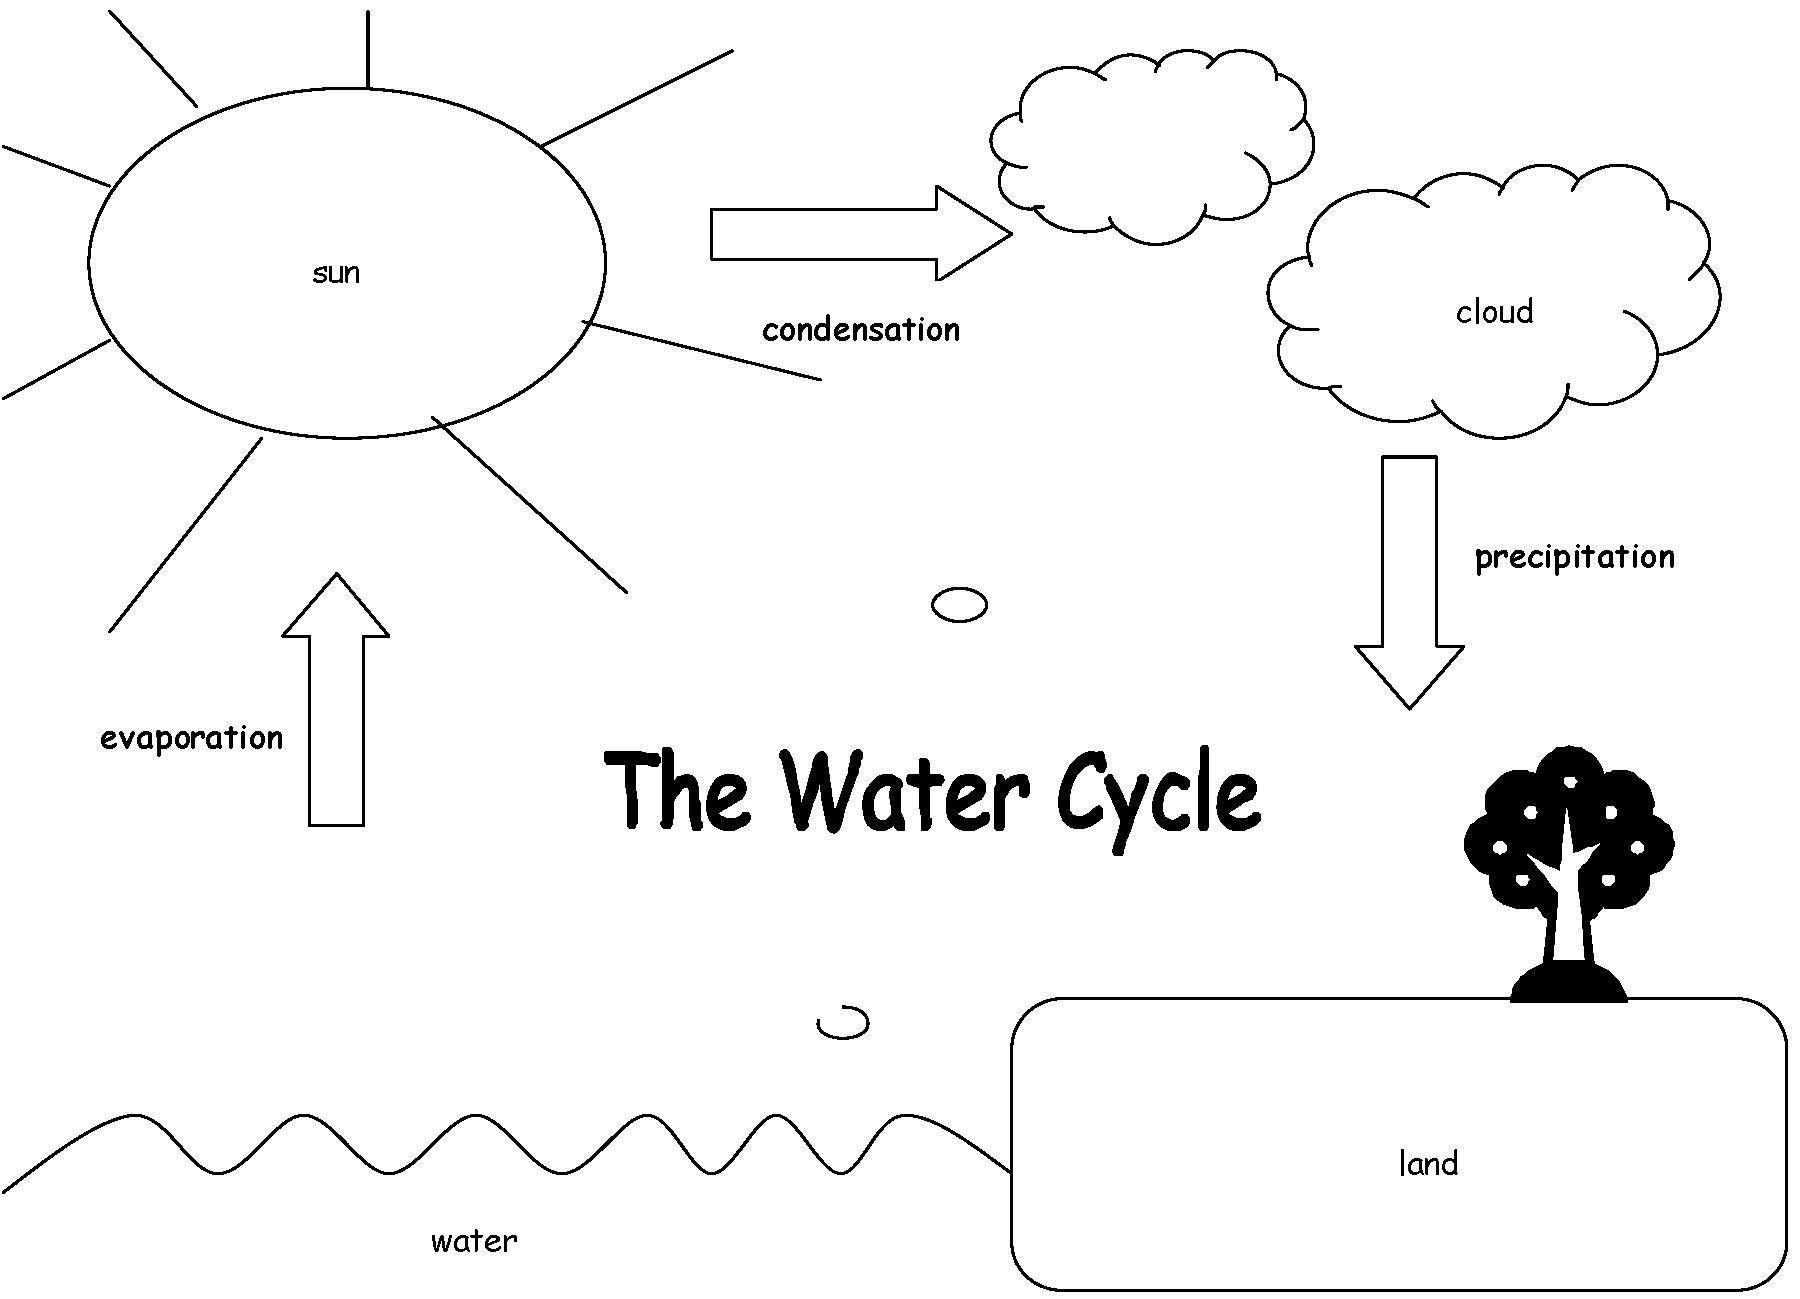 Water Cycle Worksheet 4th Grade the Water Cycle Worksheet Answers Promotiontablecovers